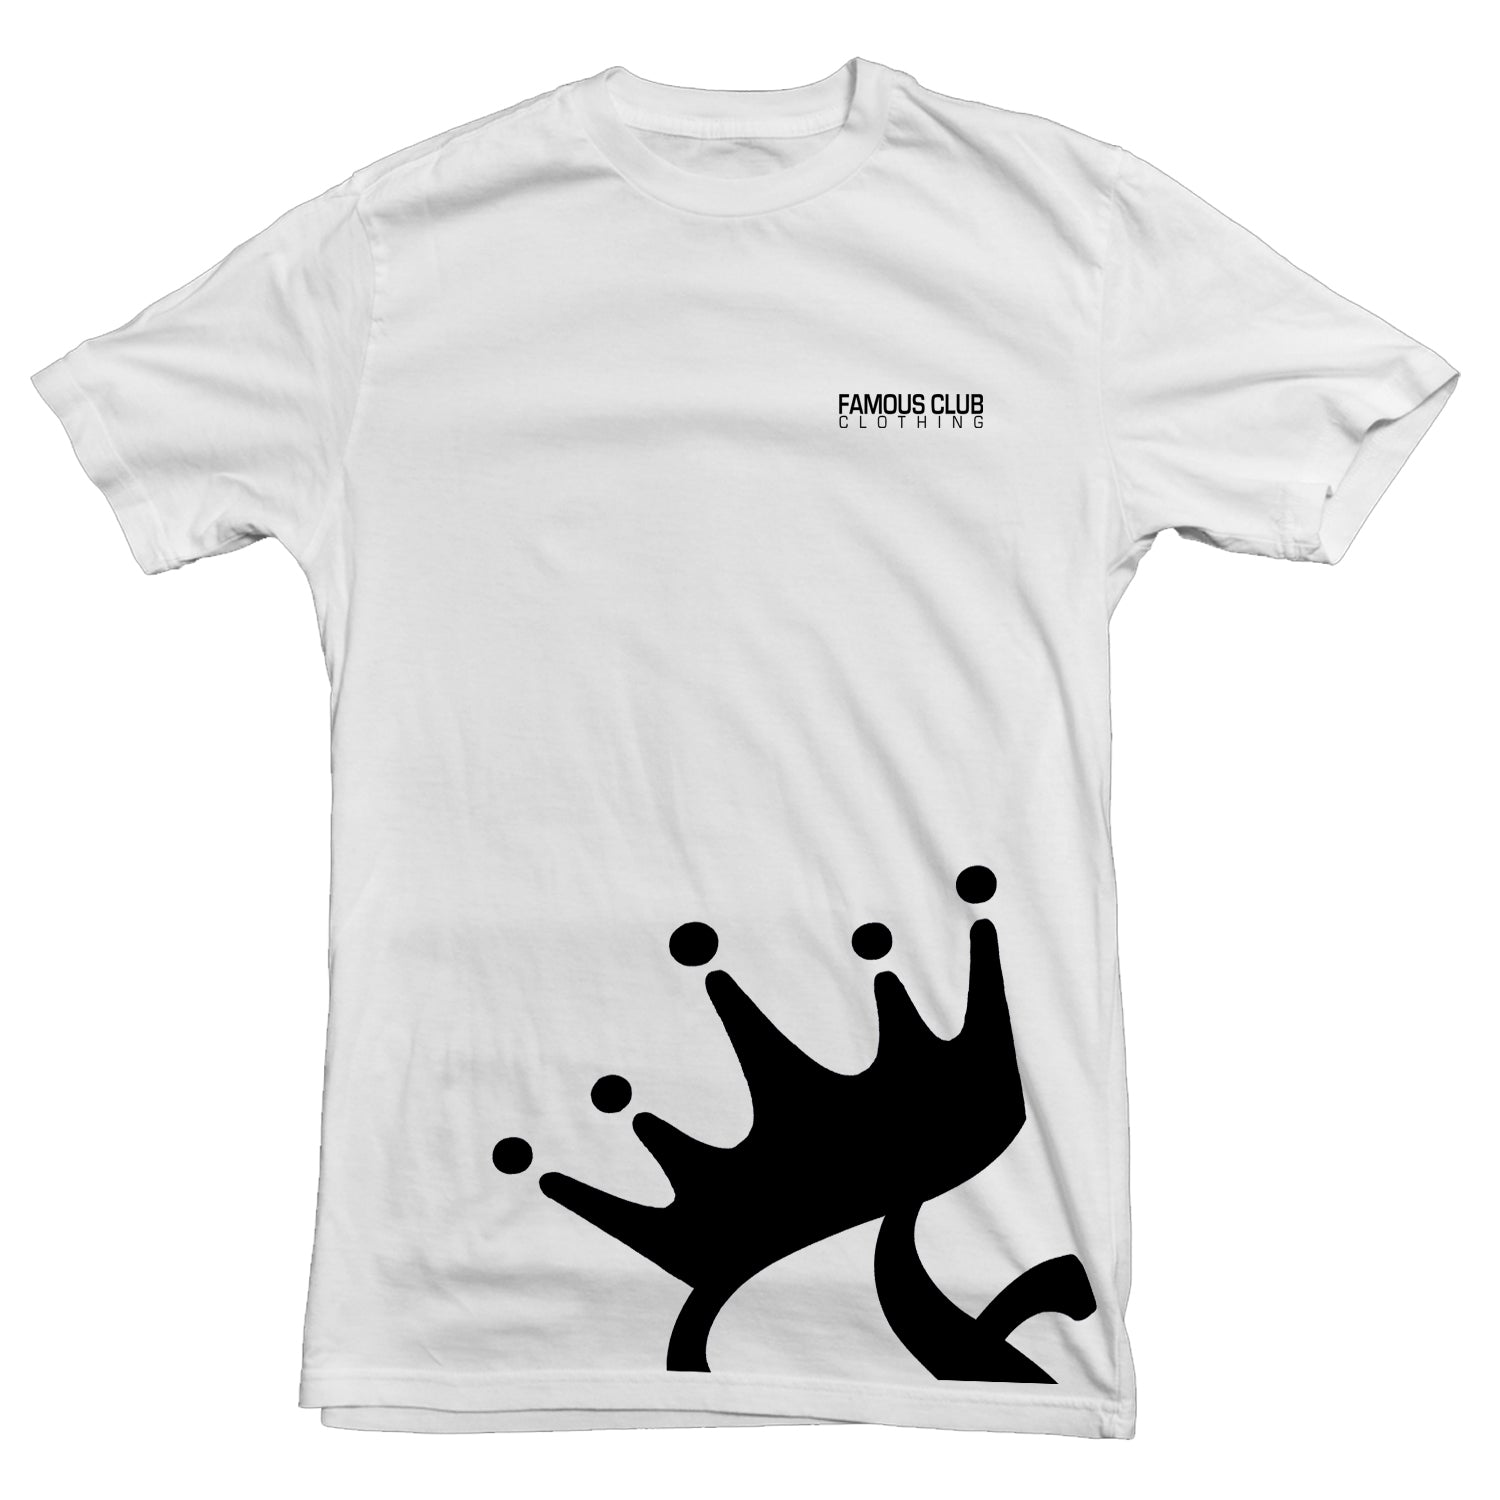 Crown White T Shirt  Streetwear Lifestyle - Famous Club Clothing